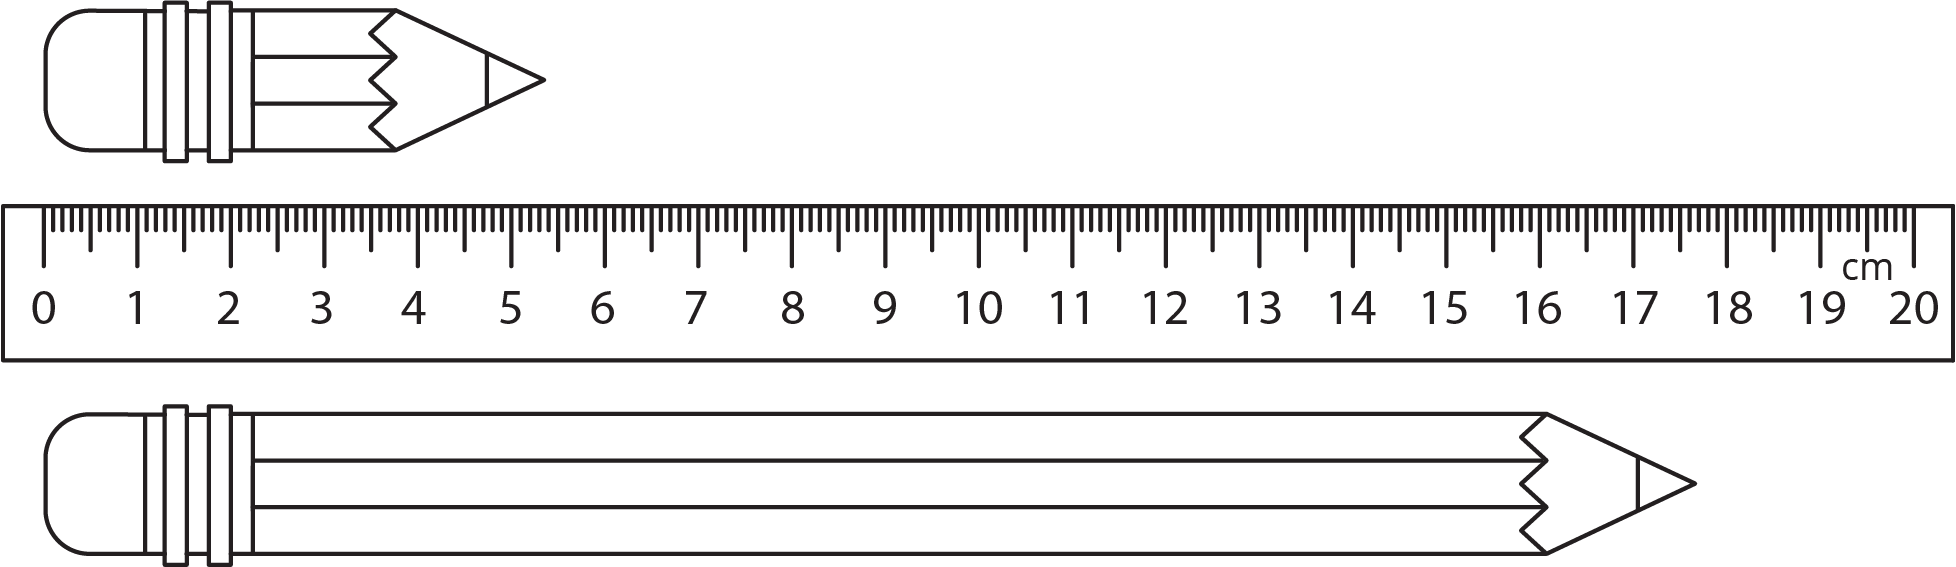 Two pencils, one significantly shorter than the other, are indicated by a ruler with millimeter and centimeter markings. The top pencil's eraser lines up with 0 and the tip ends between 5 point 3 and 5 point 5 centimeters. The bottom pencil's eraser lines up with the 0 and the tip ends between 17 point 6 and 17 point 8 centimeters.